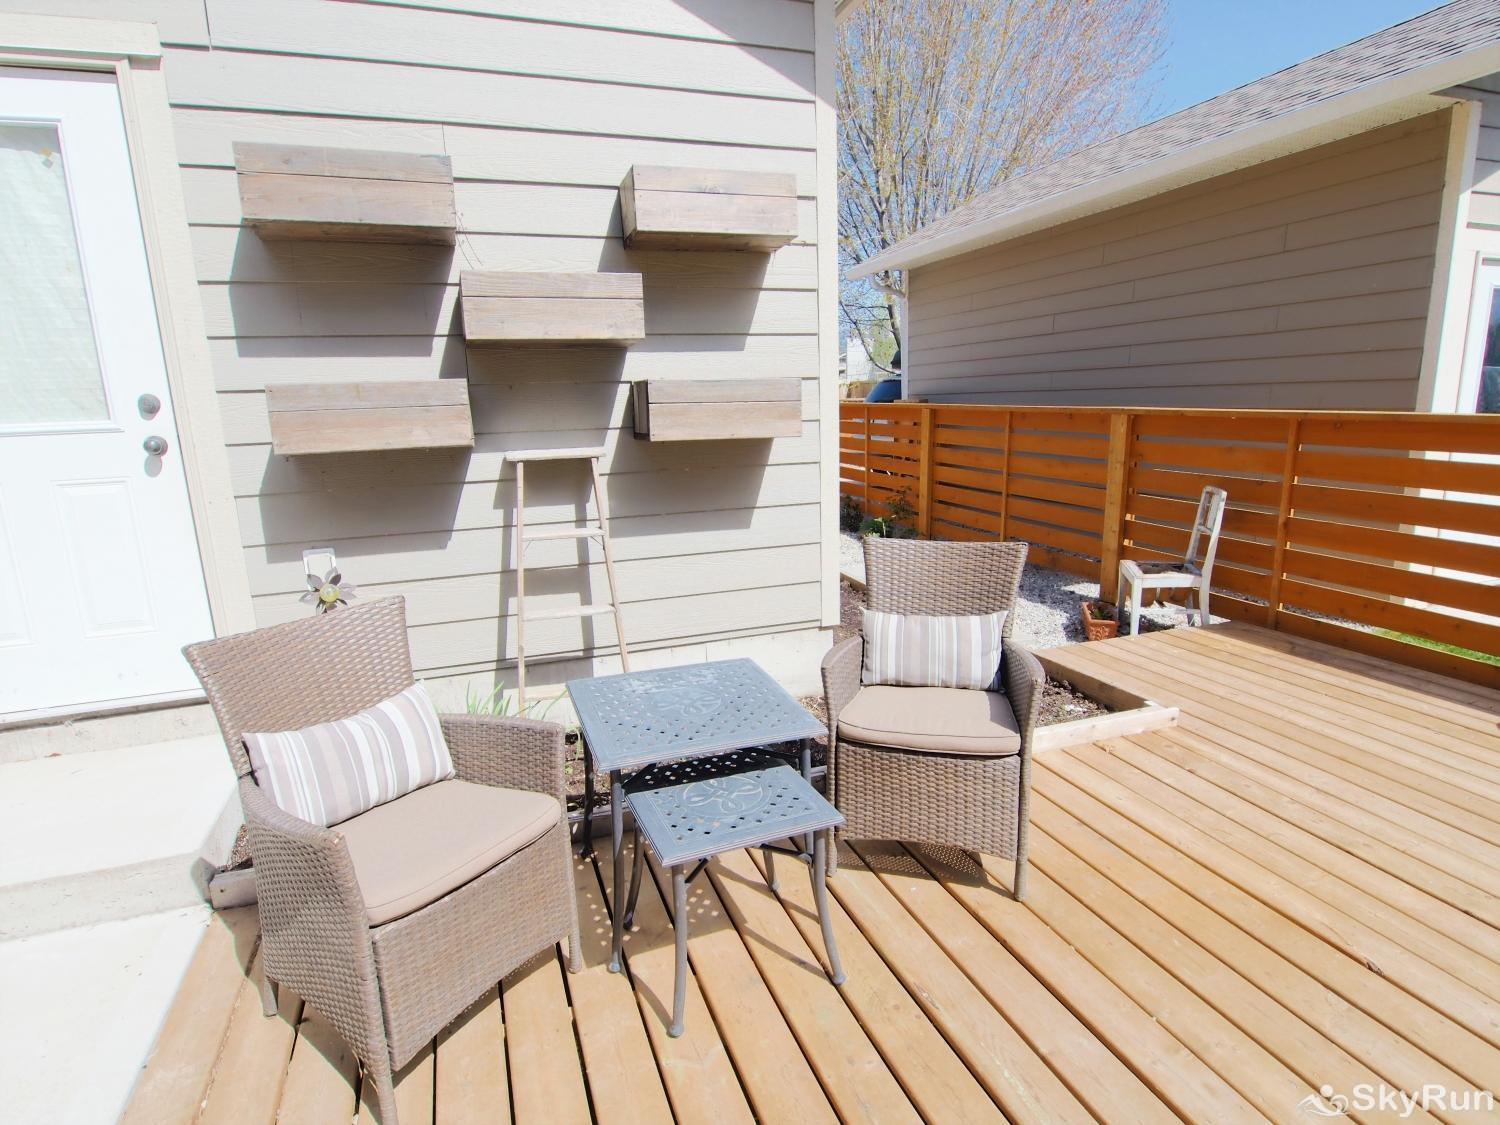 Old Summerland 4 bedroom townhouse Backyard patio seating